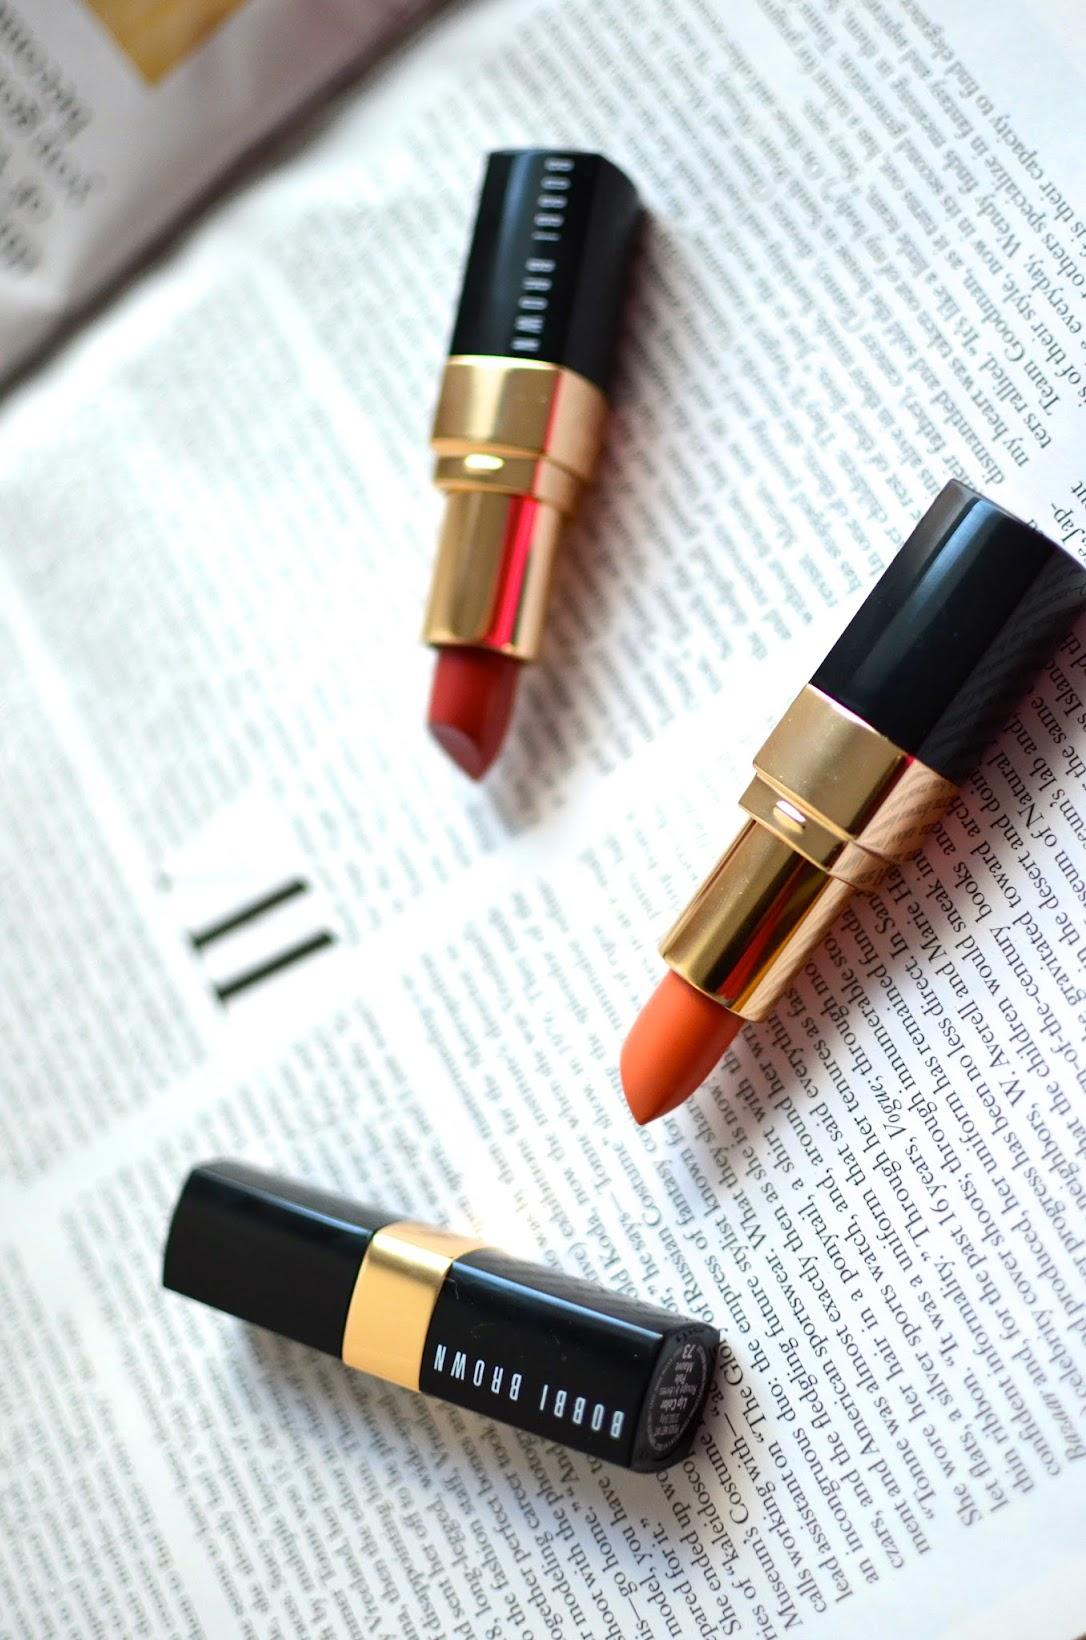 Bobbi Brown lipstick shades for Fall, Bobbi Brown lipstick, Neiman Marcus beauty, Neiman Beauty counter essentials, ShopStyle Collective, new fall lipstick shades